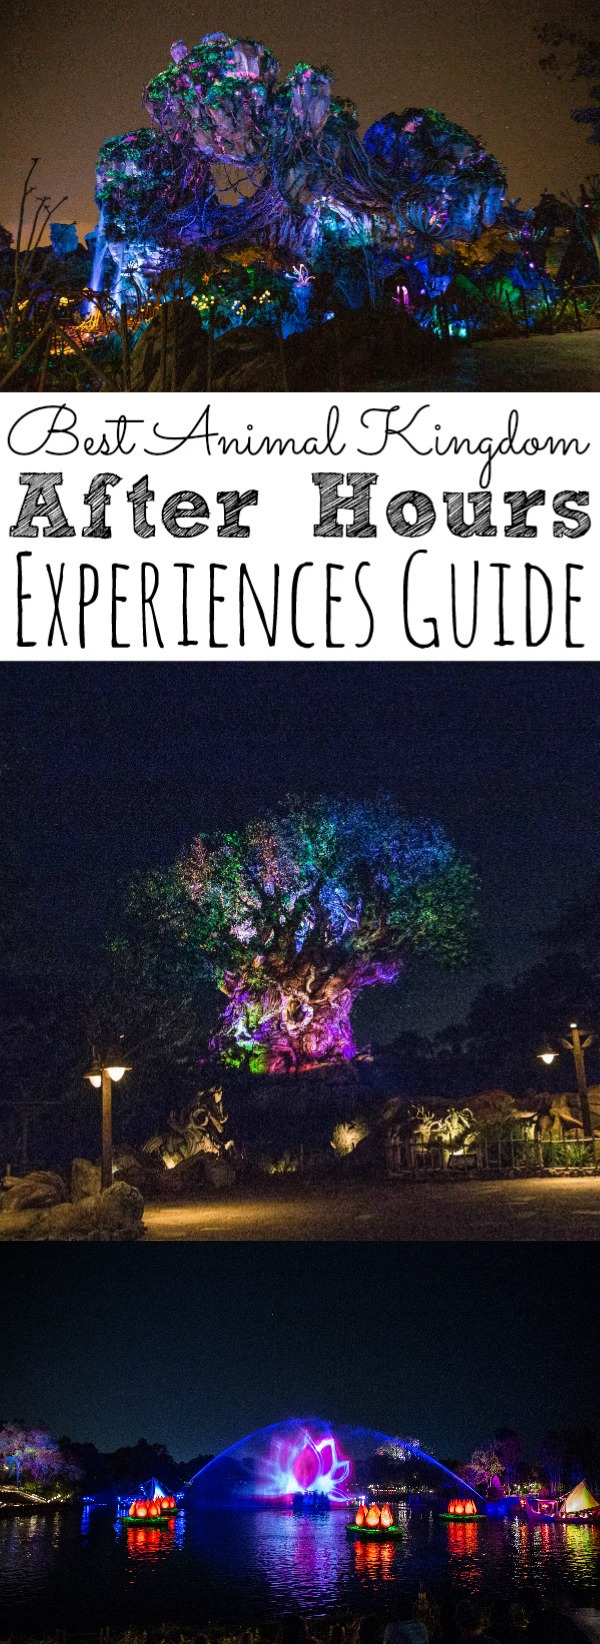 Animal Kingdom After Hours Experiences